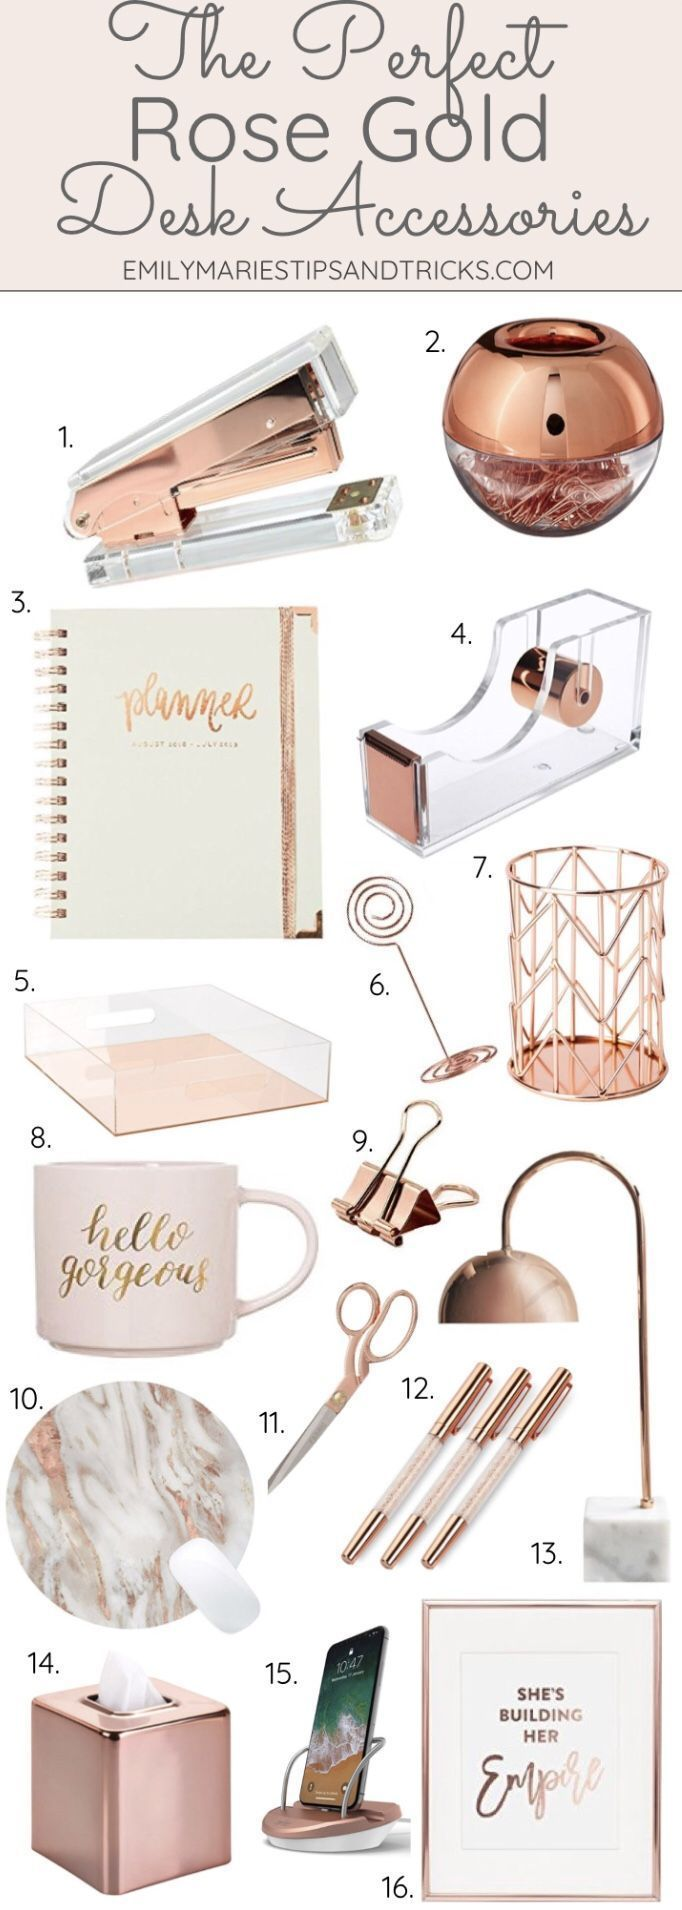 The Perfect Rose Gold Desk Accessories